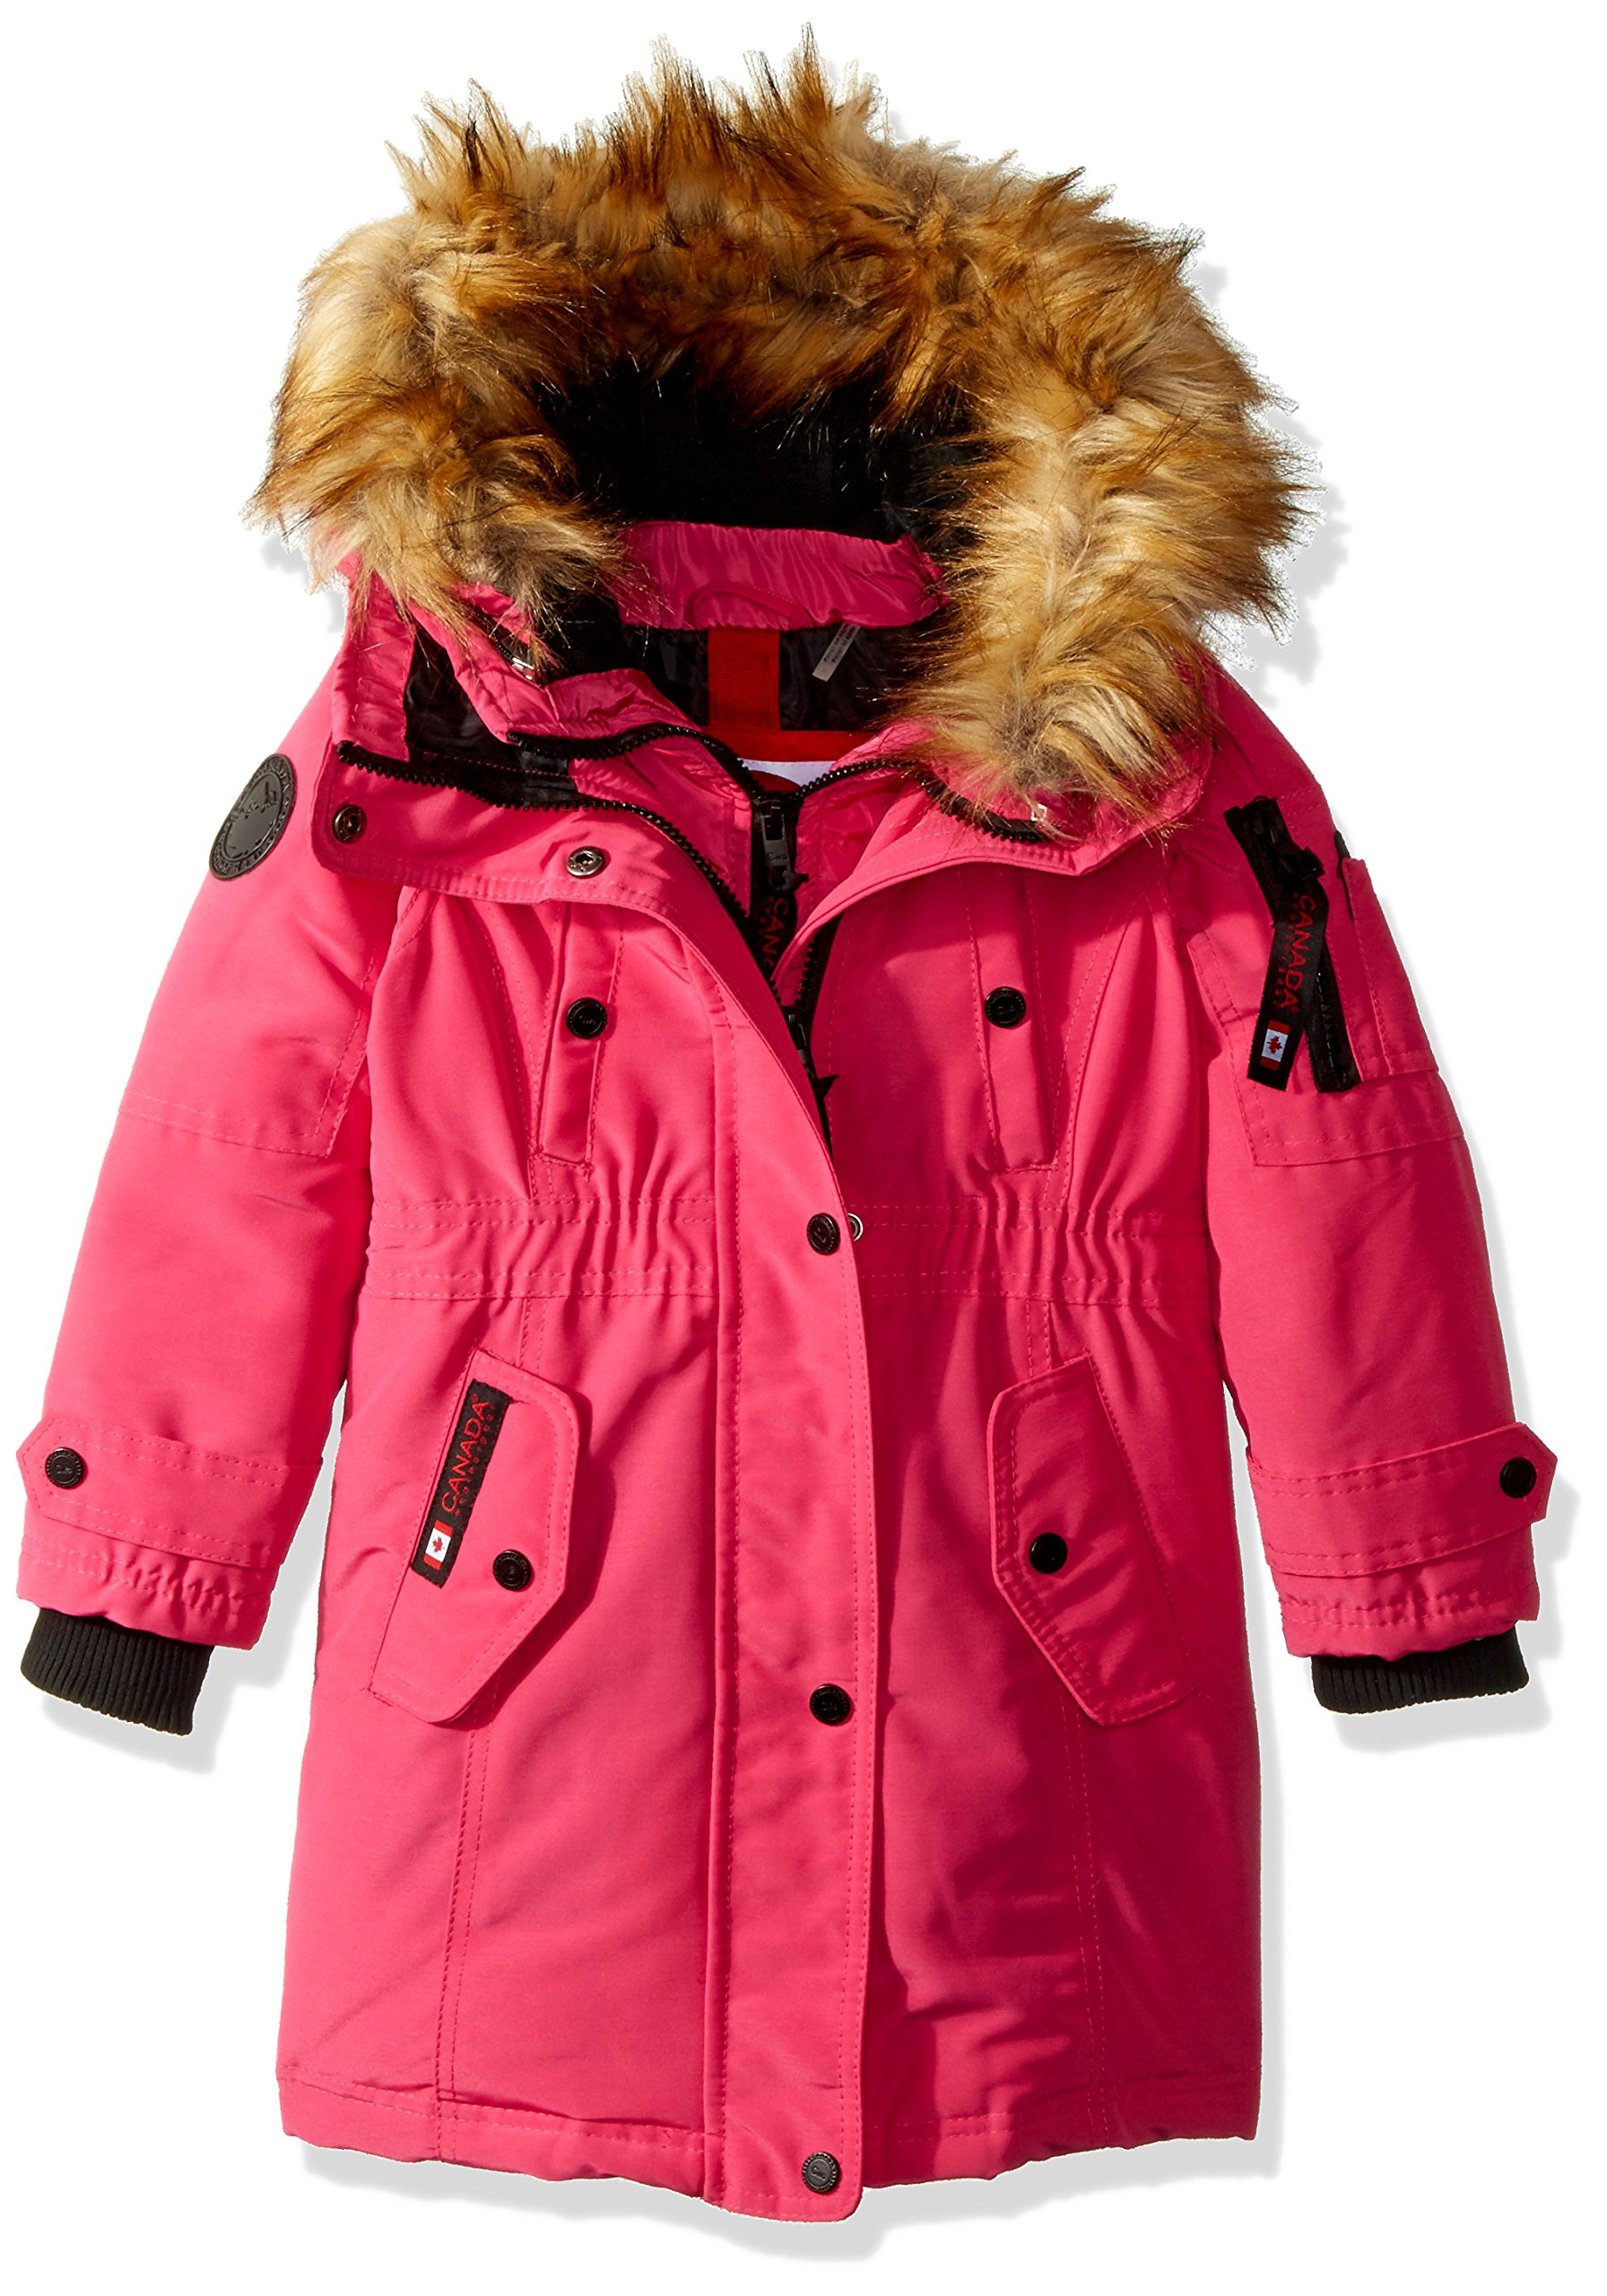 Canada Weather Gear Toddler Girls' Outerwear Jacket (More Styles Available), Hooded Parka-CW046-Fuchsia/Natural, 4T